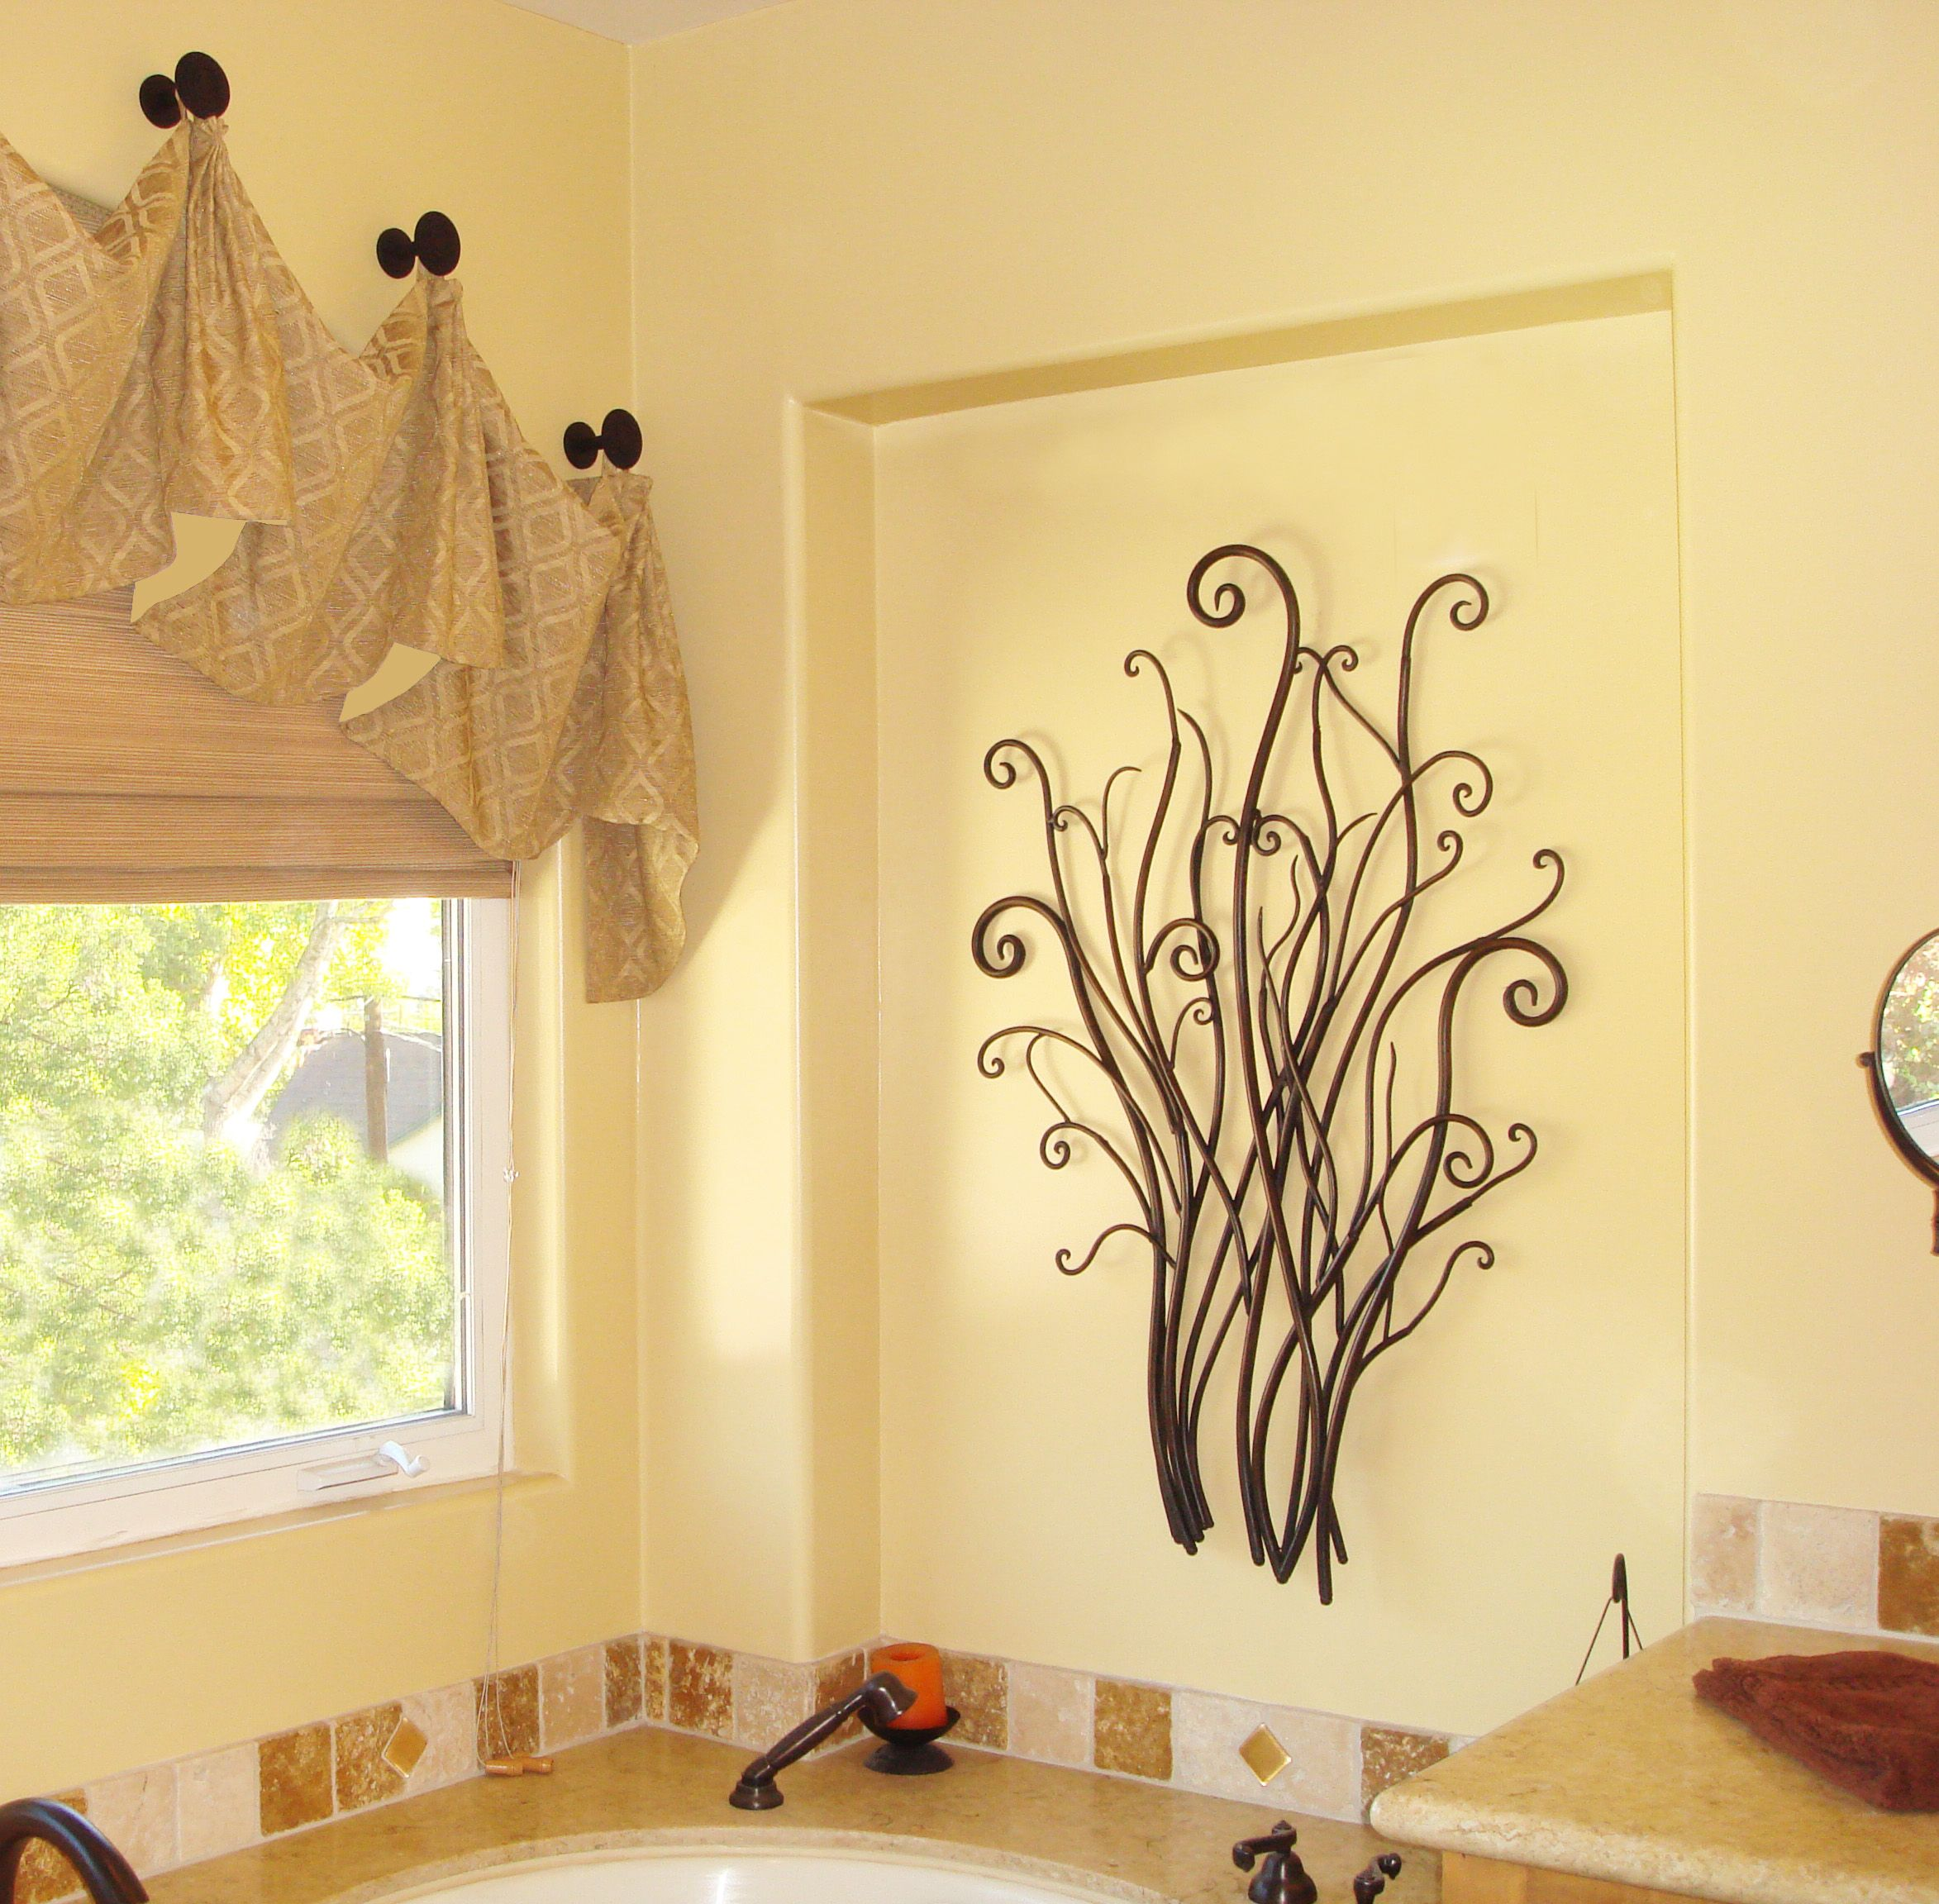 metal wall decor & custom window treatments featured in master ...